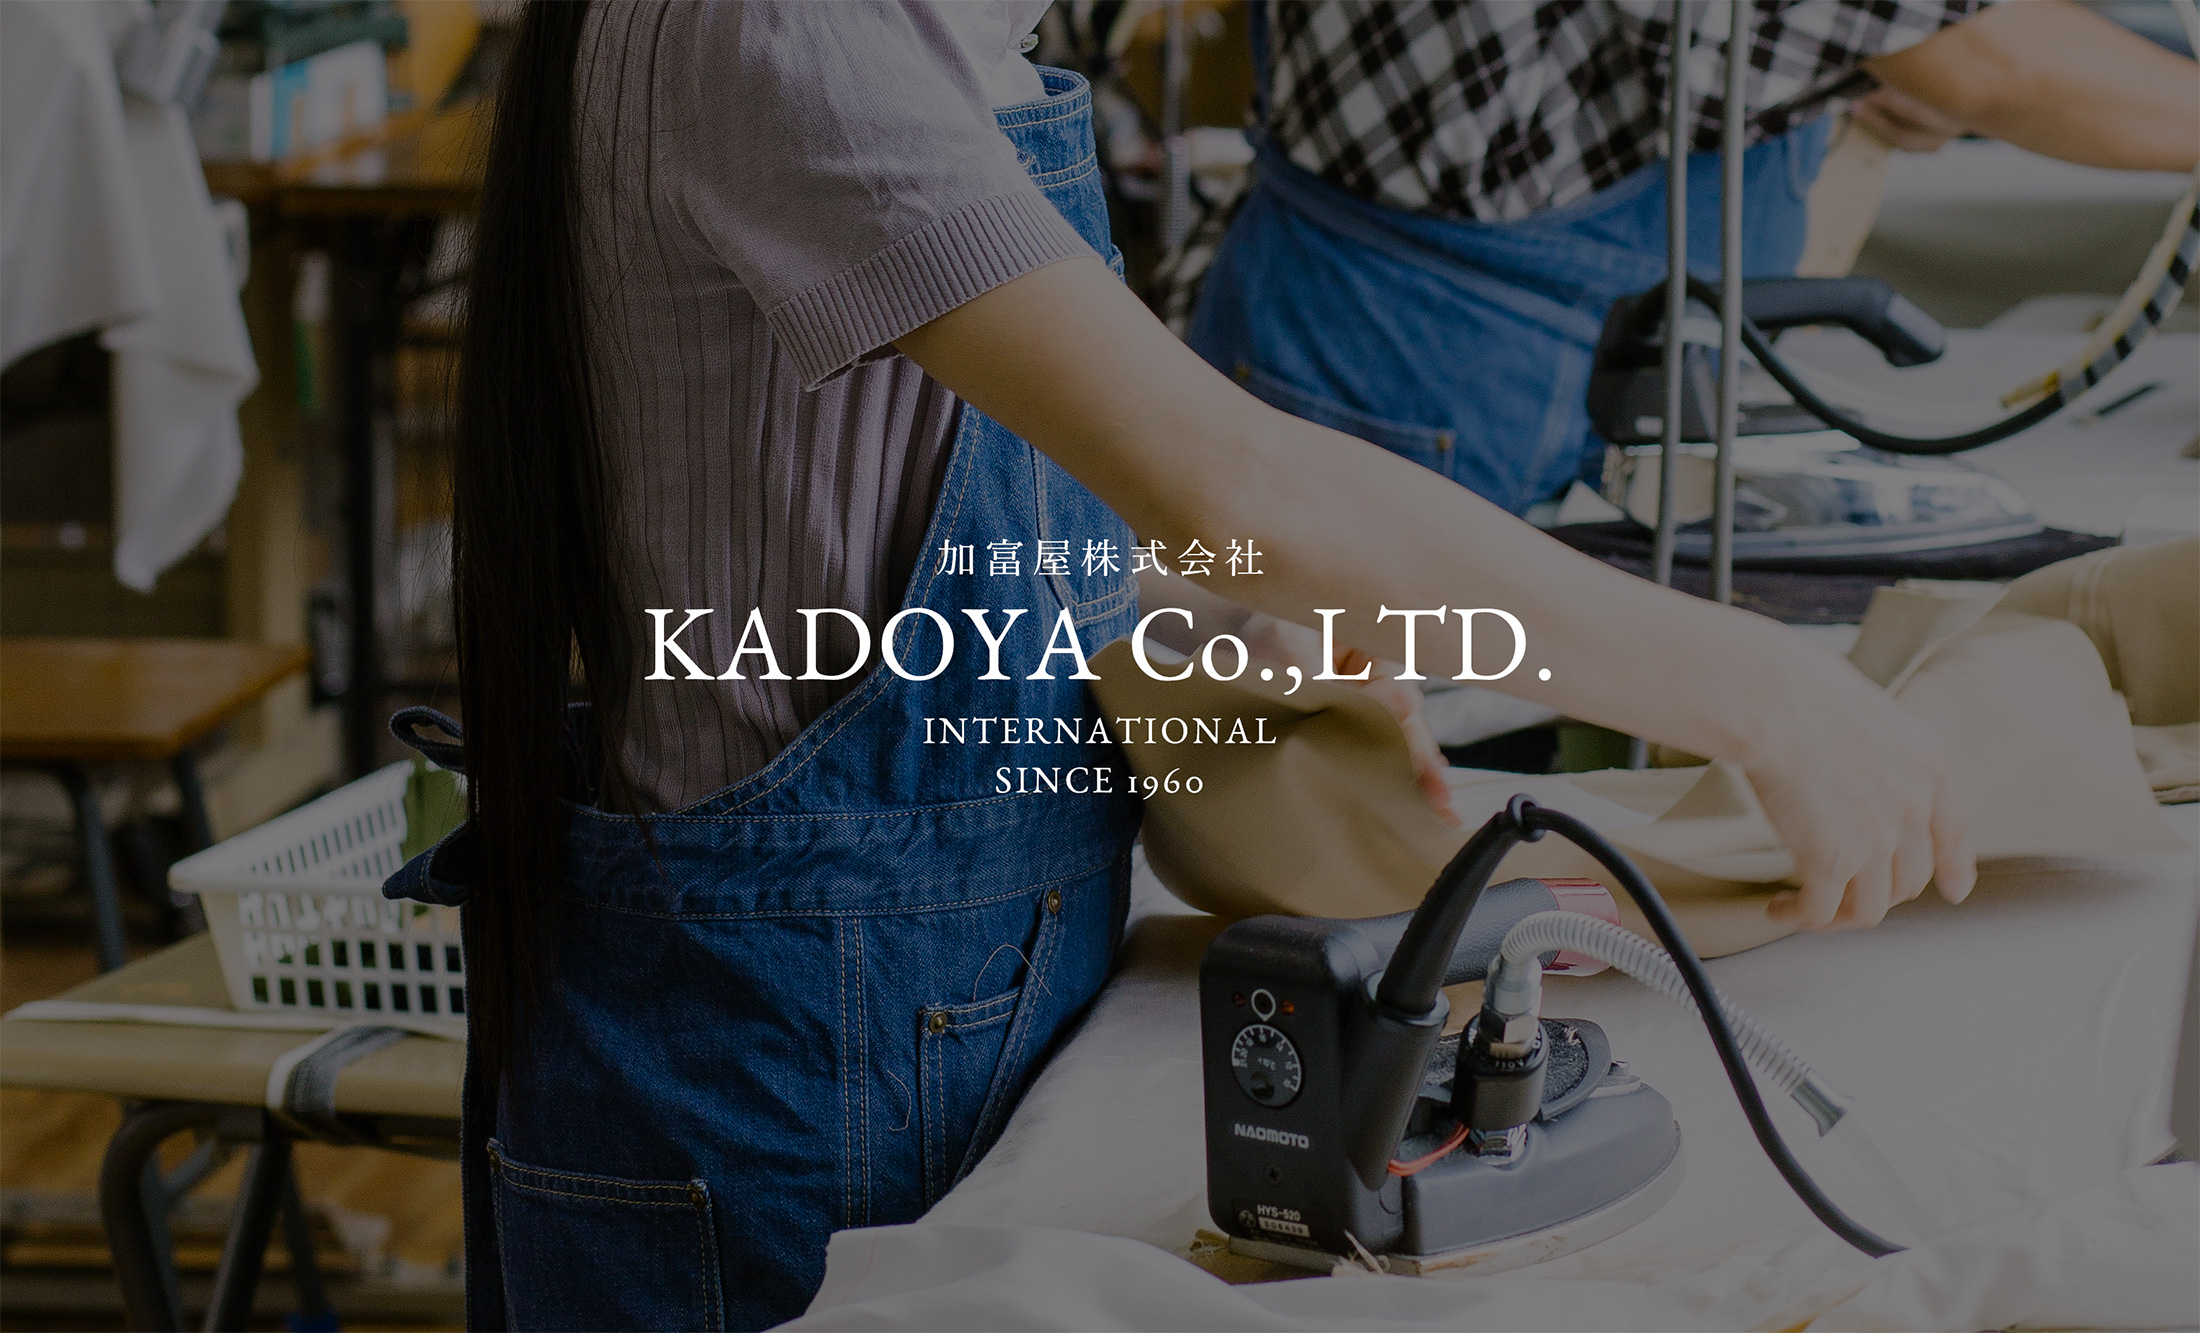 加富屋株式会社 KADOYA Co.,LTD. INTERNATIONAL SINCE 1960